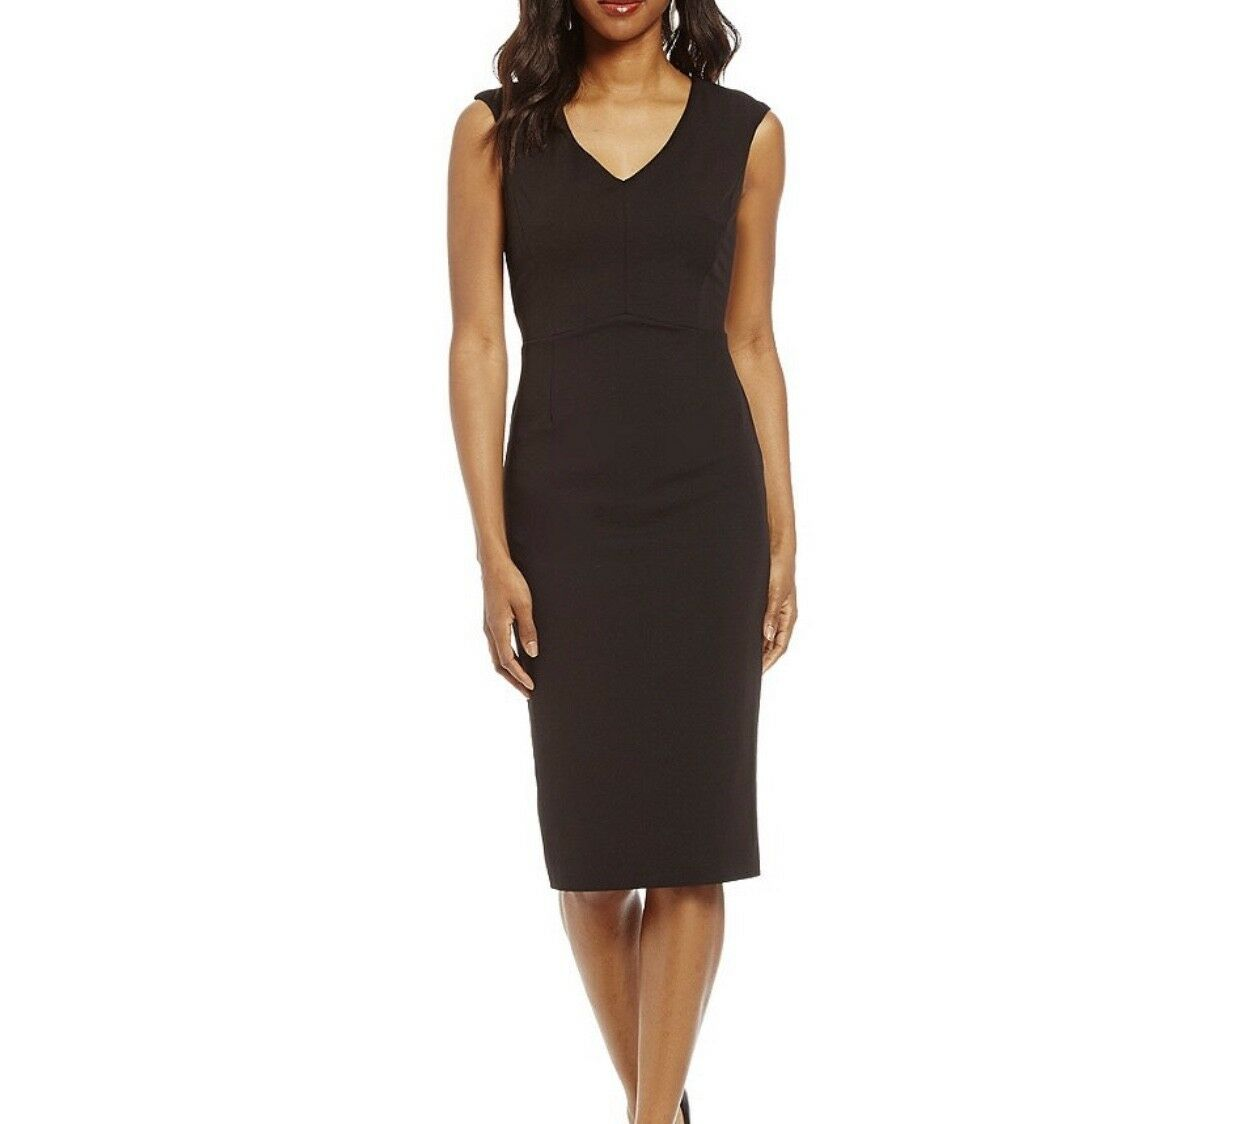 Ivanka Trump Compression Compression Compression Panel Dress Size 16 8e840b